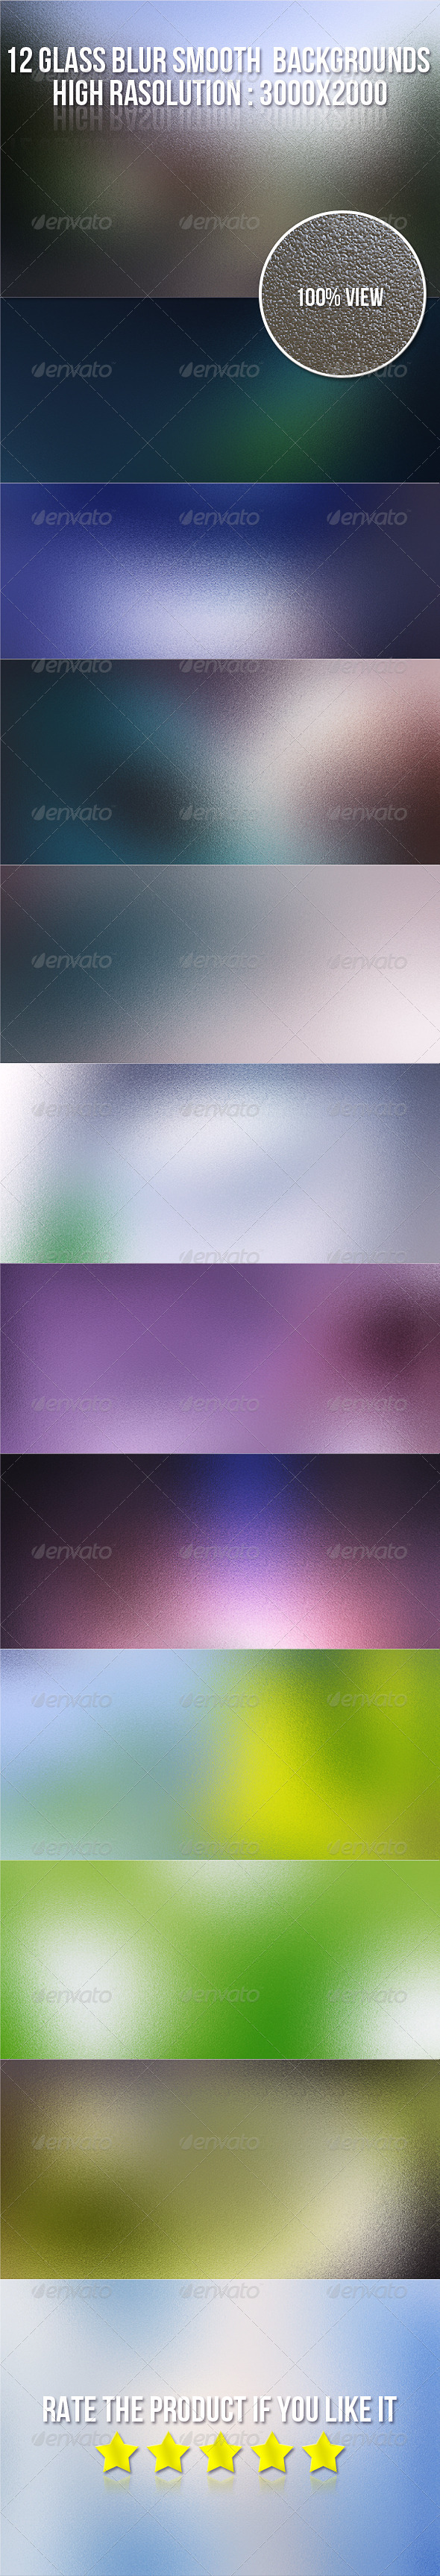 GraphicRiver 12 Glass Blur Smooth Backgrounds 5558802